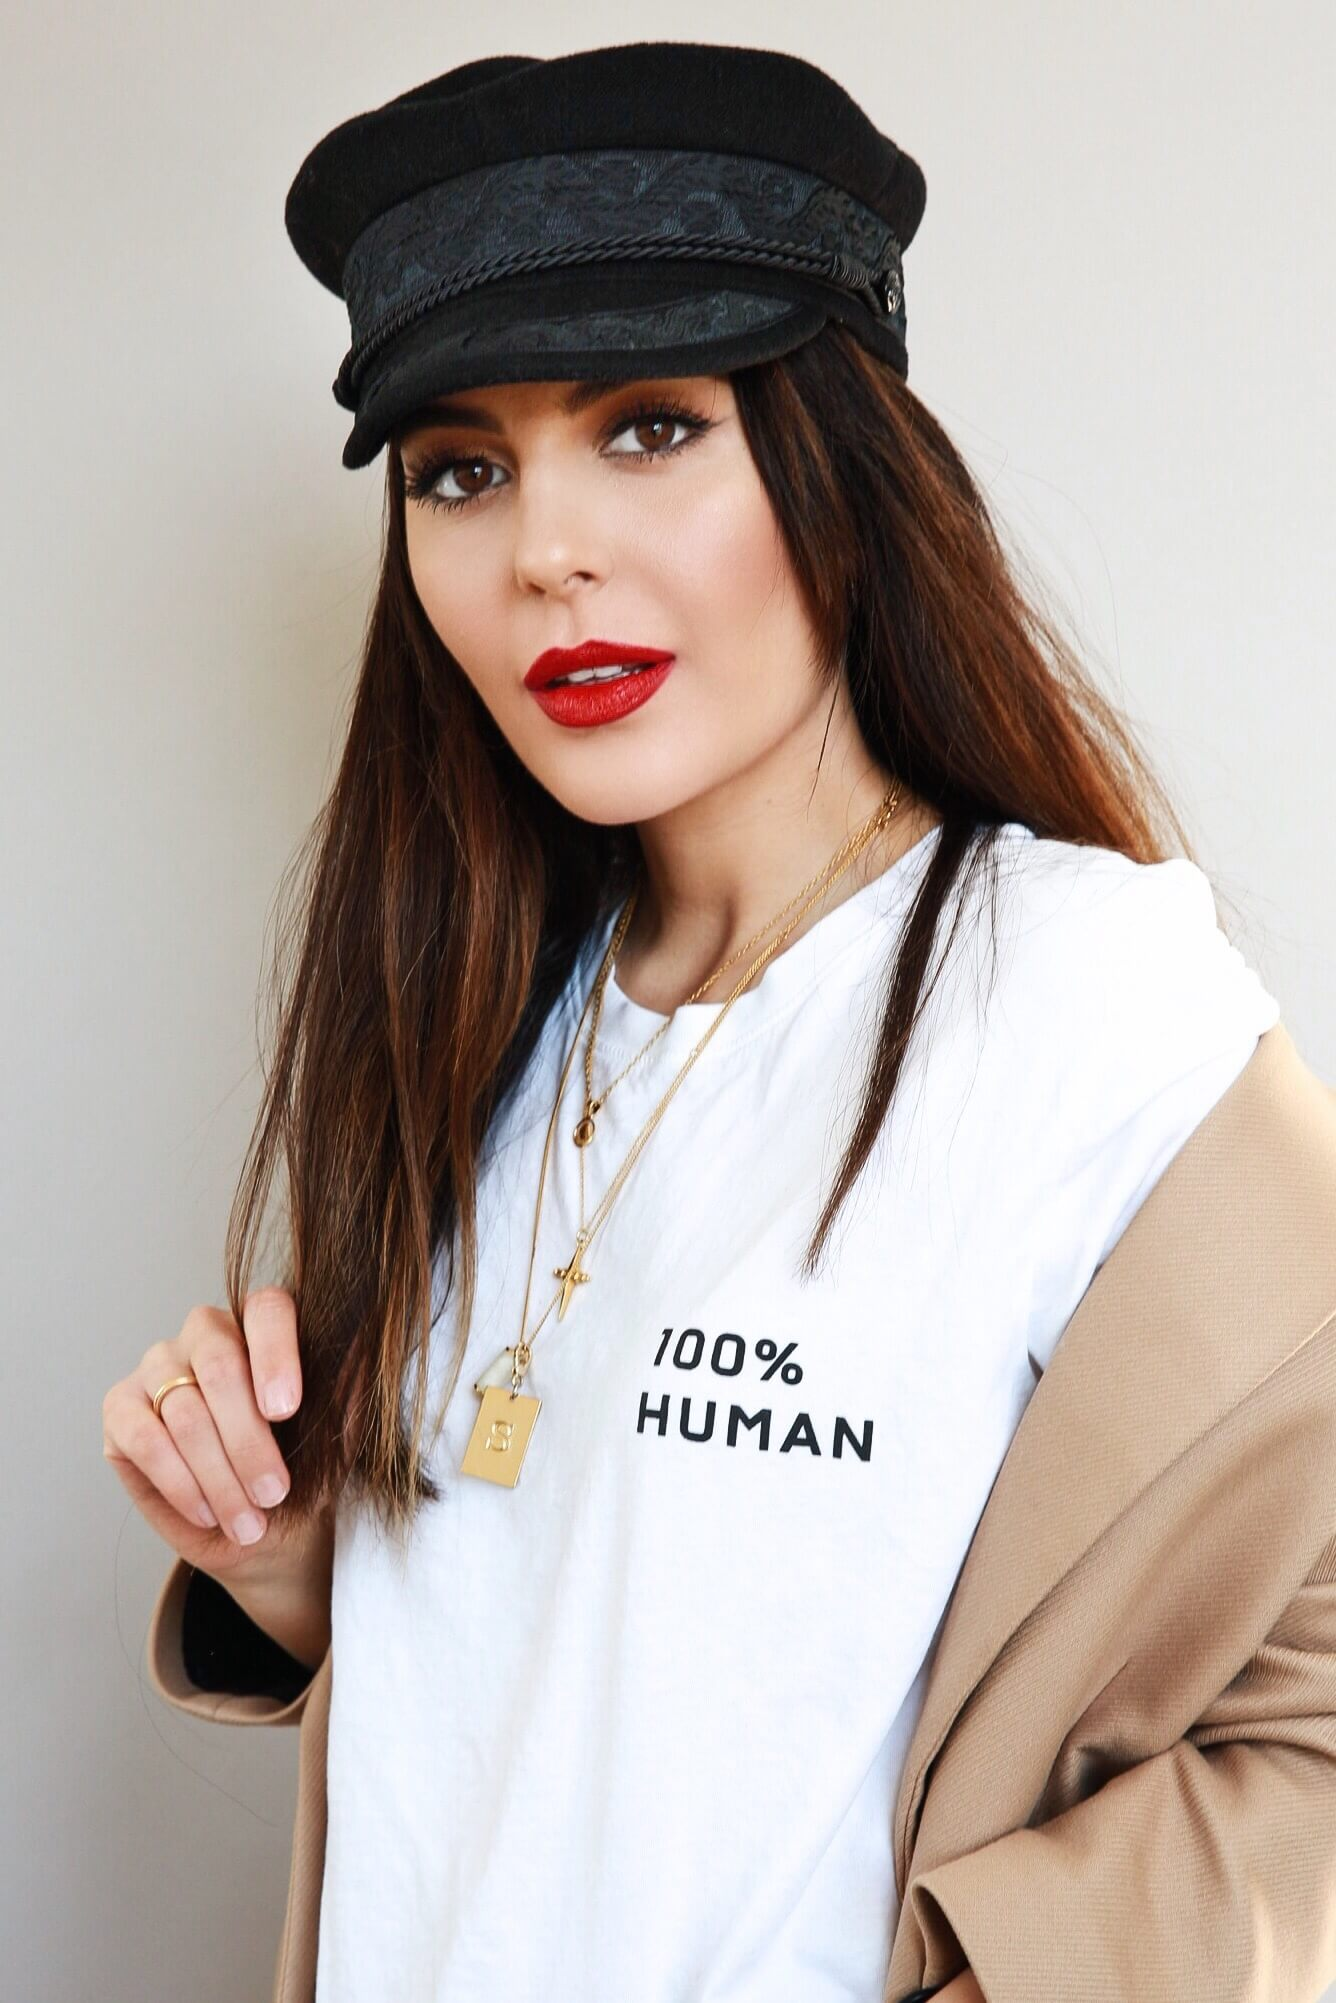 Military hat trend